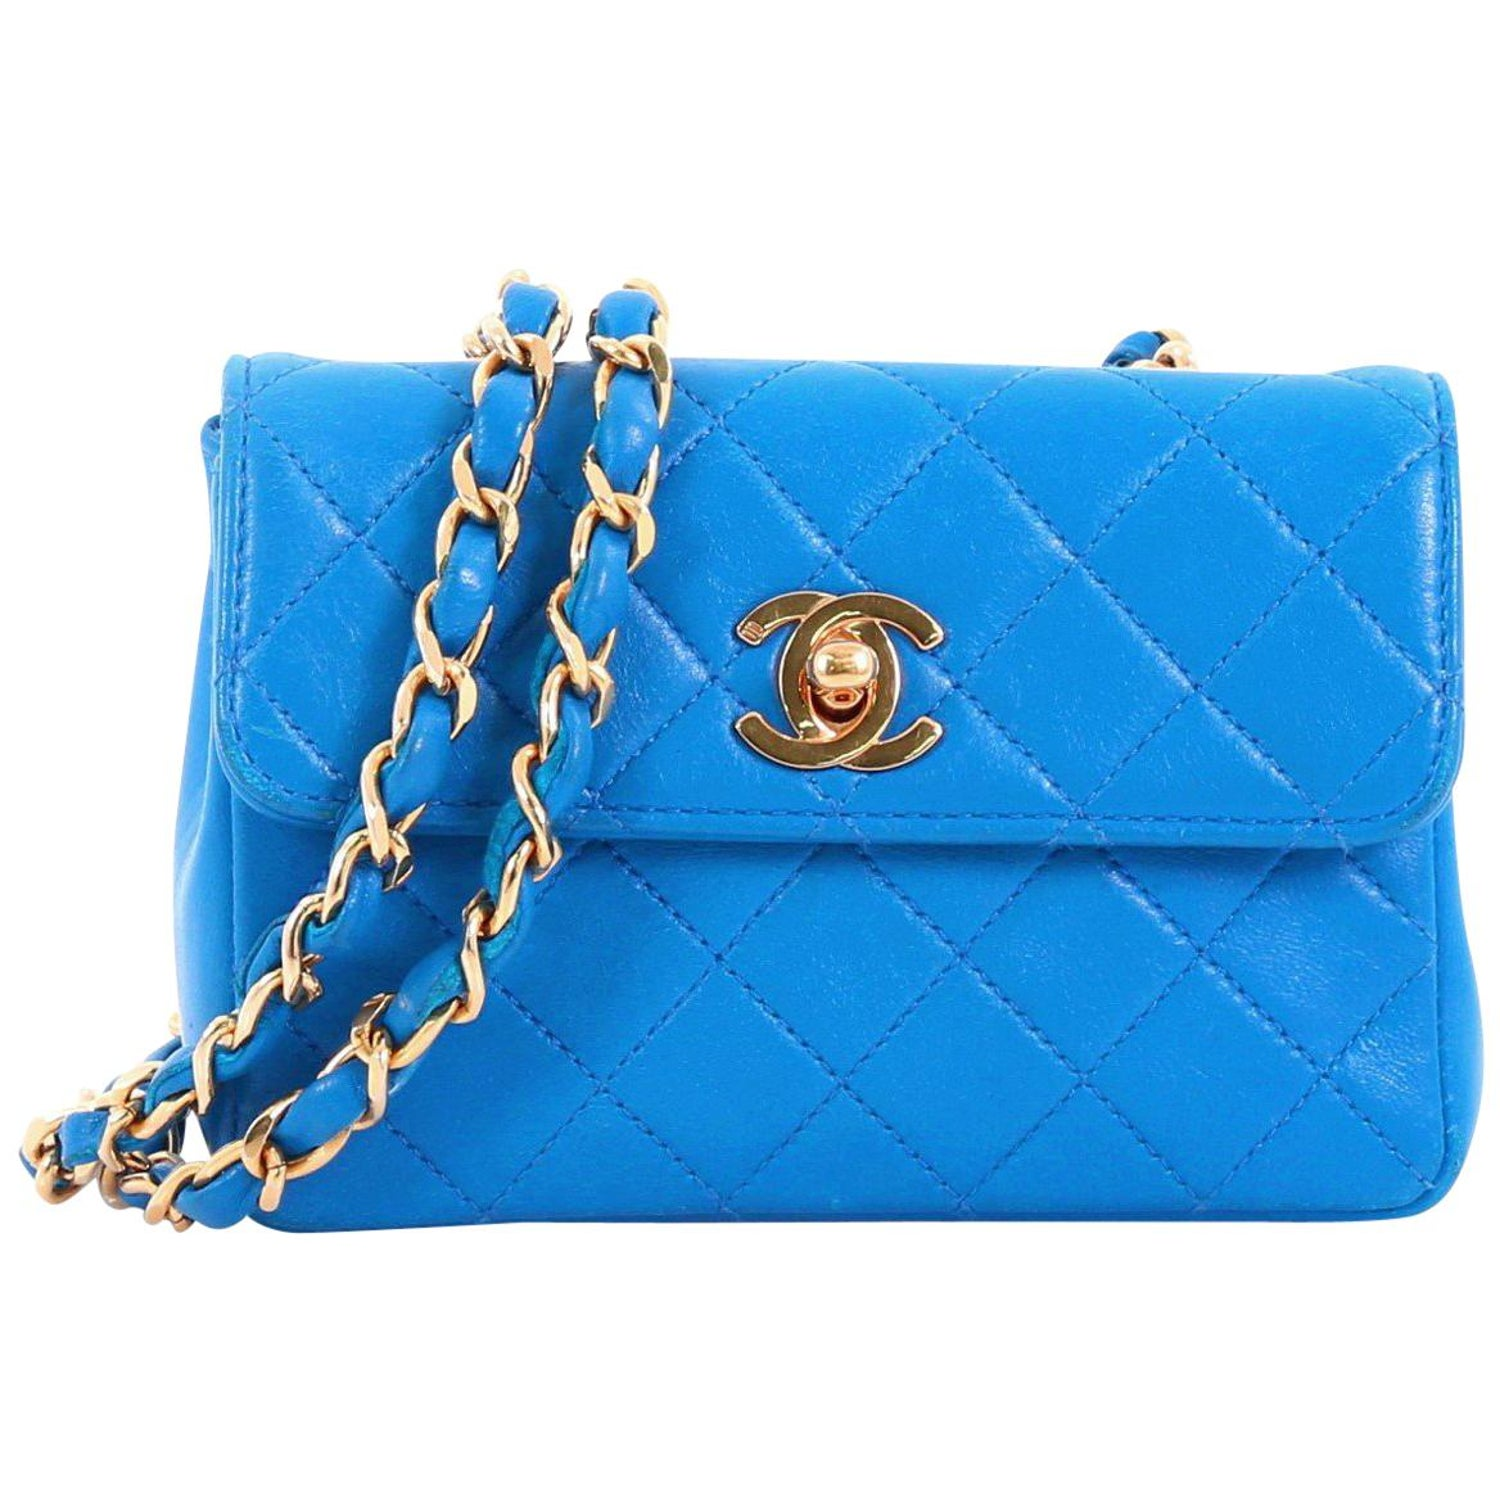 a28b5d916470 Chanel Vintage CC Chain Flap Bag Quilted Leather Extra Mini at 1stdibs